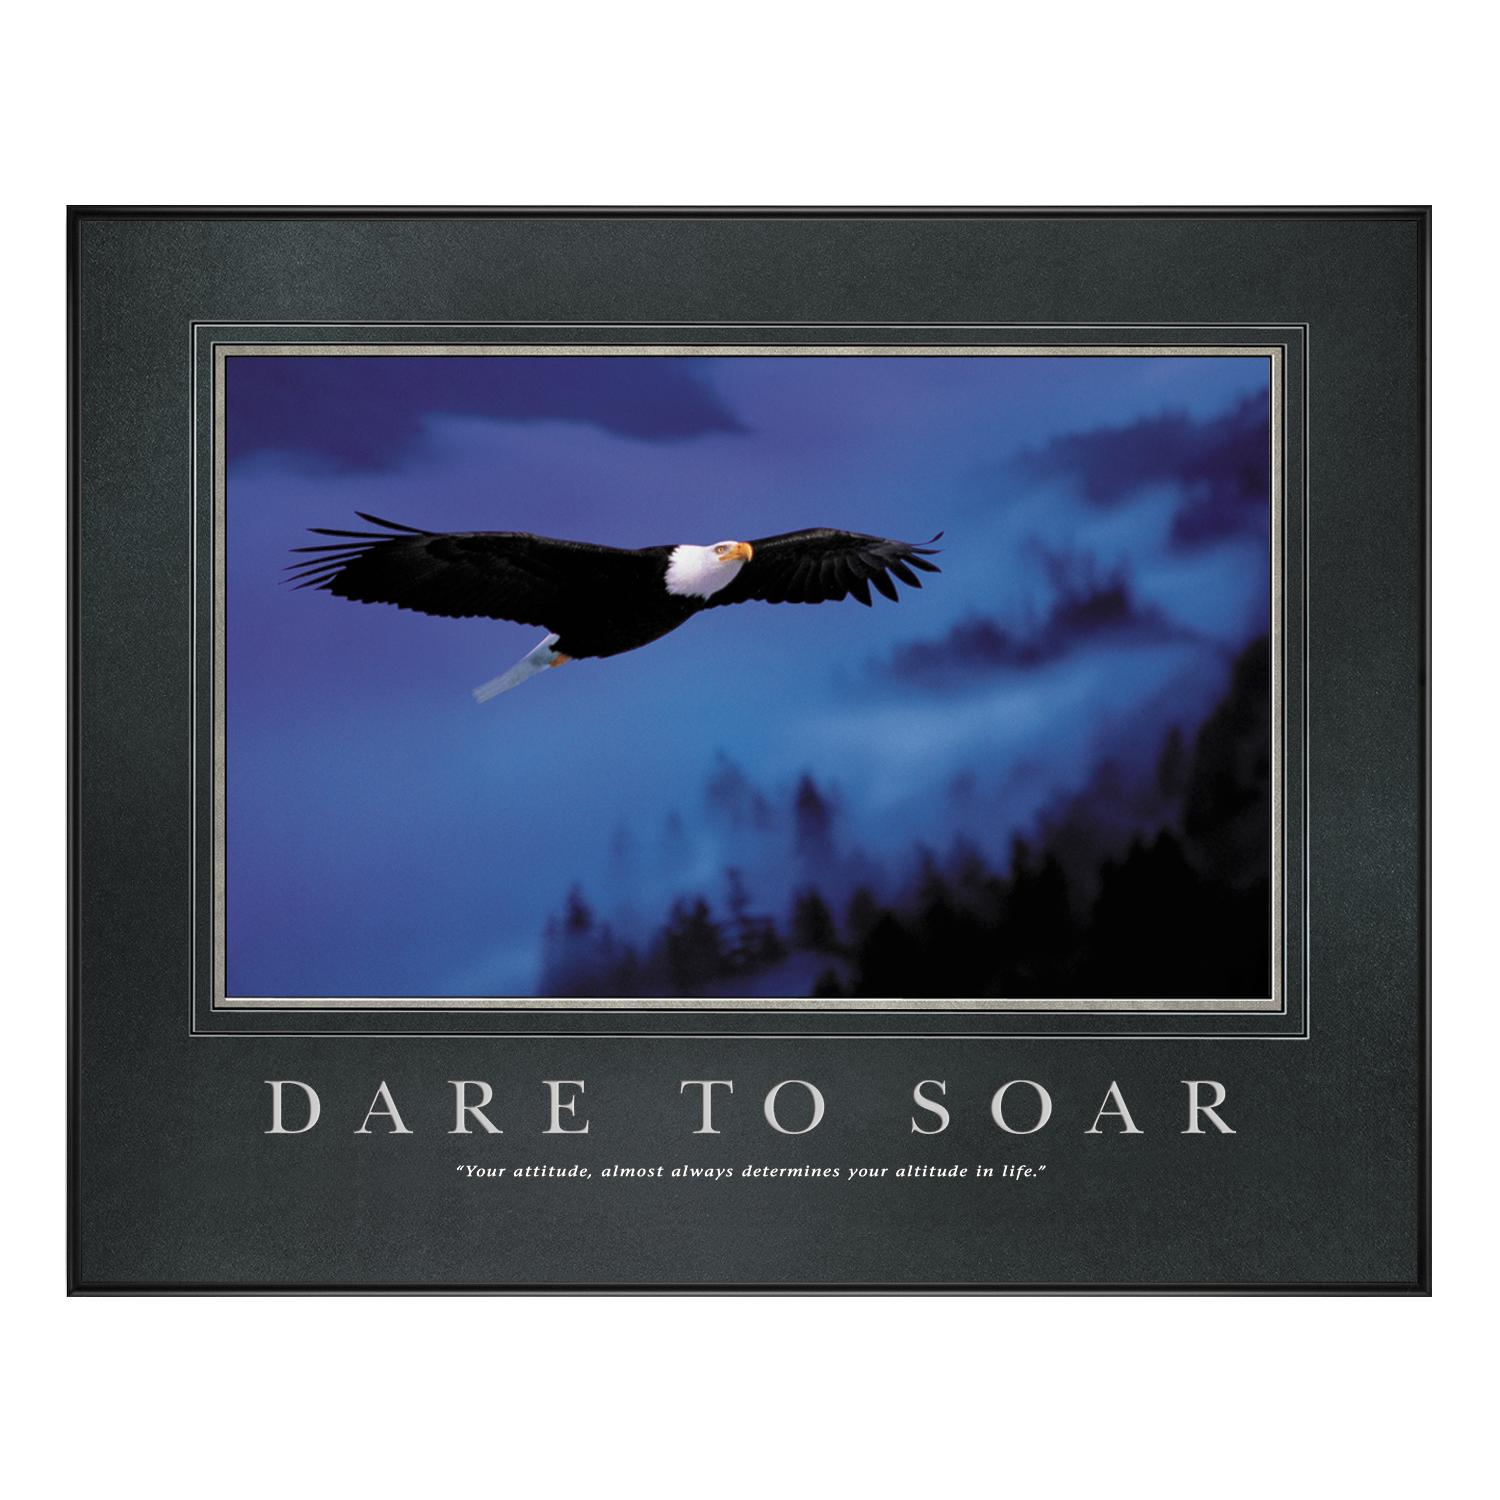 dare to soar motivational poster classic motivational posters all motivational posters. Black Bedroom Furniture Sets. Home Design Ideas